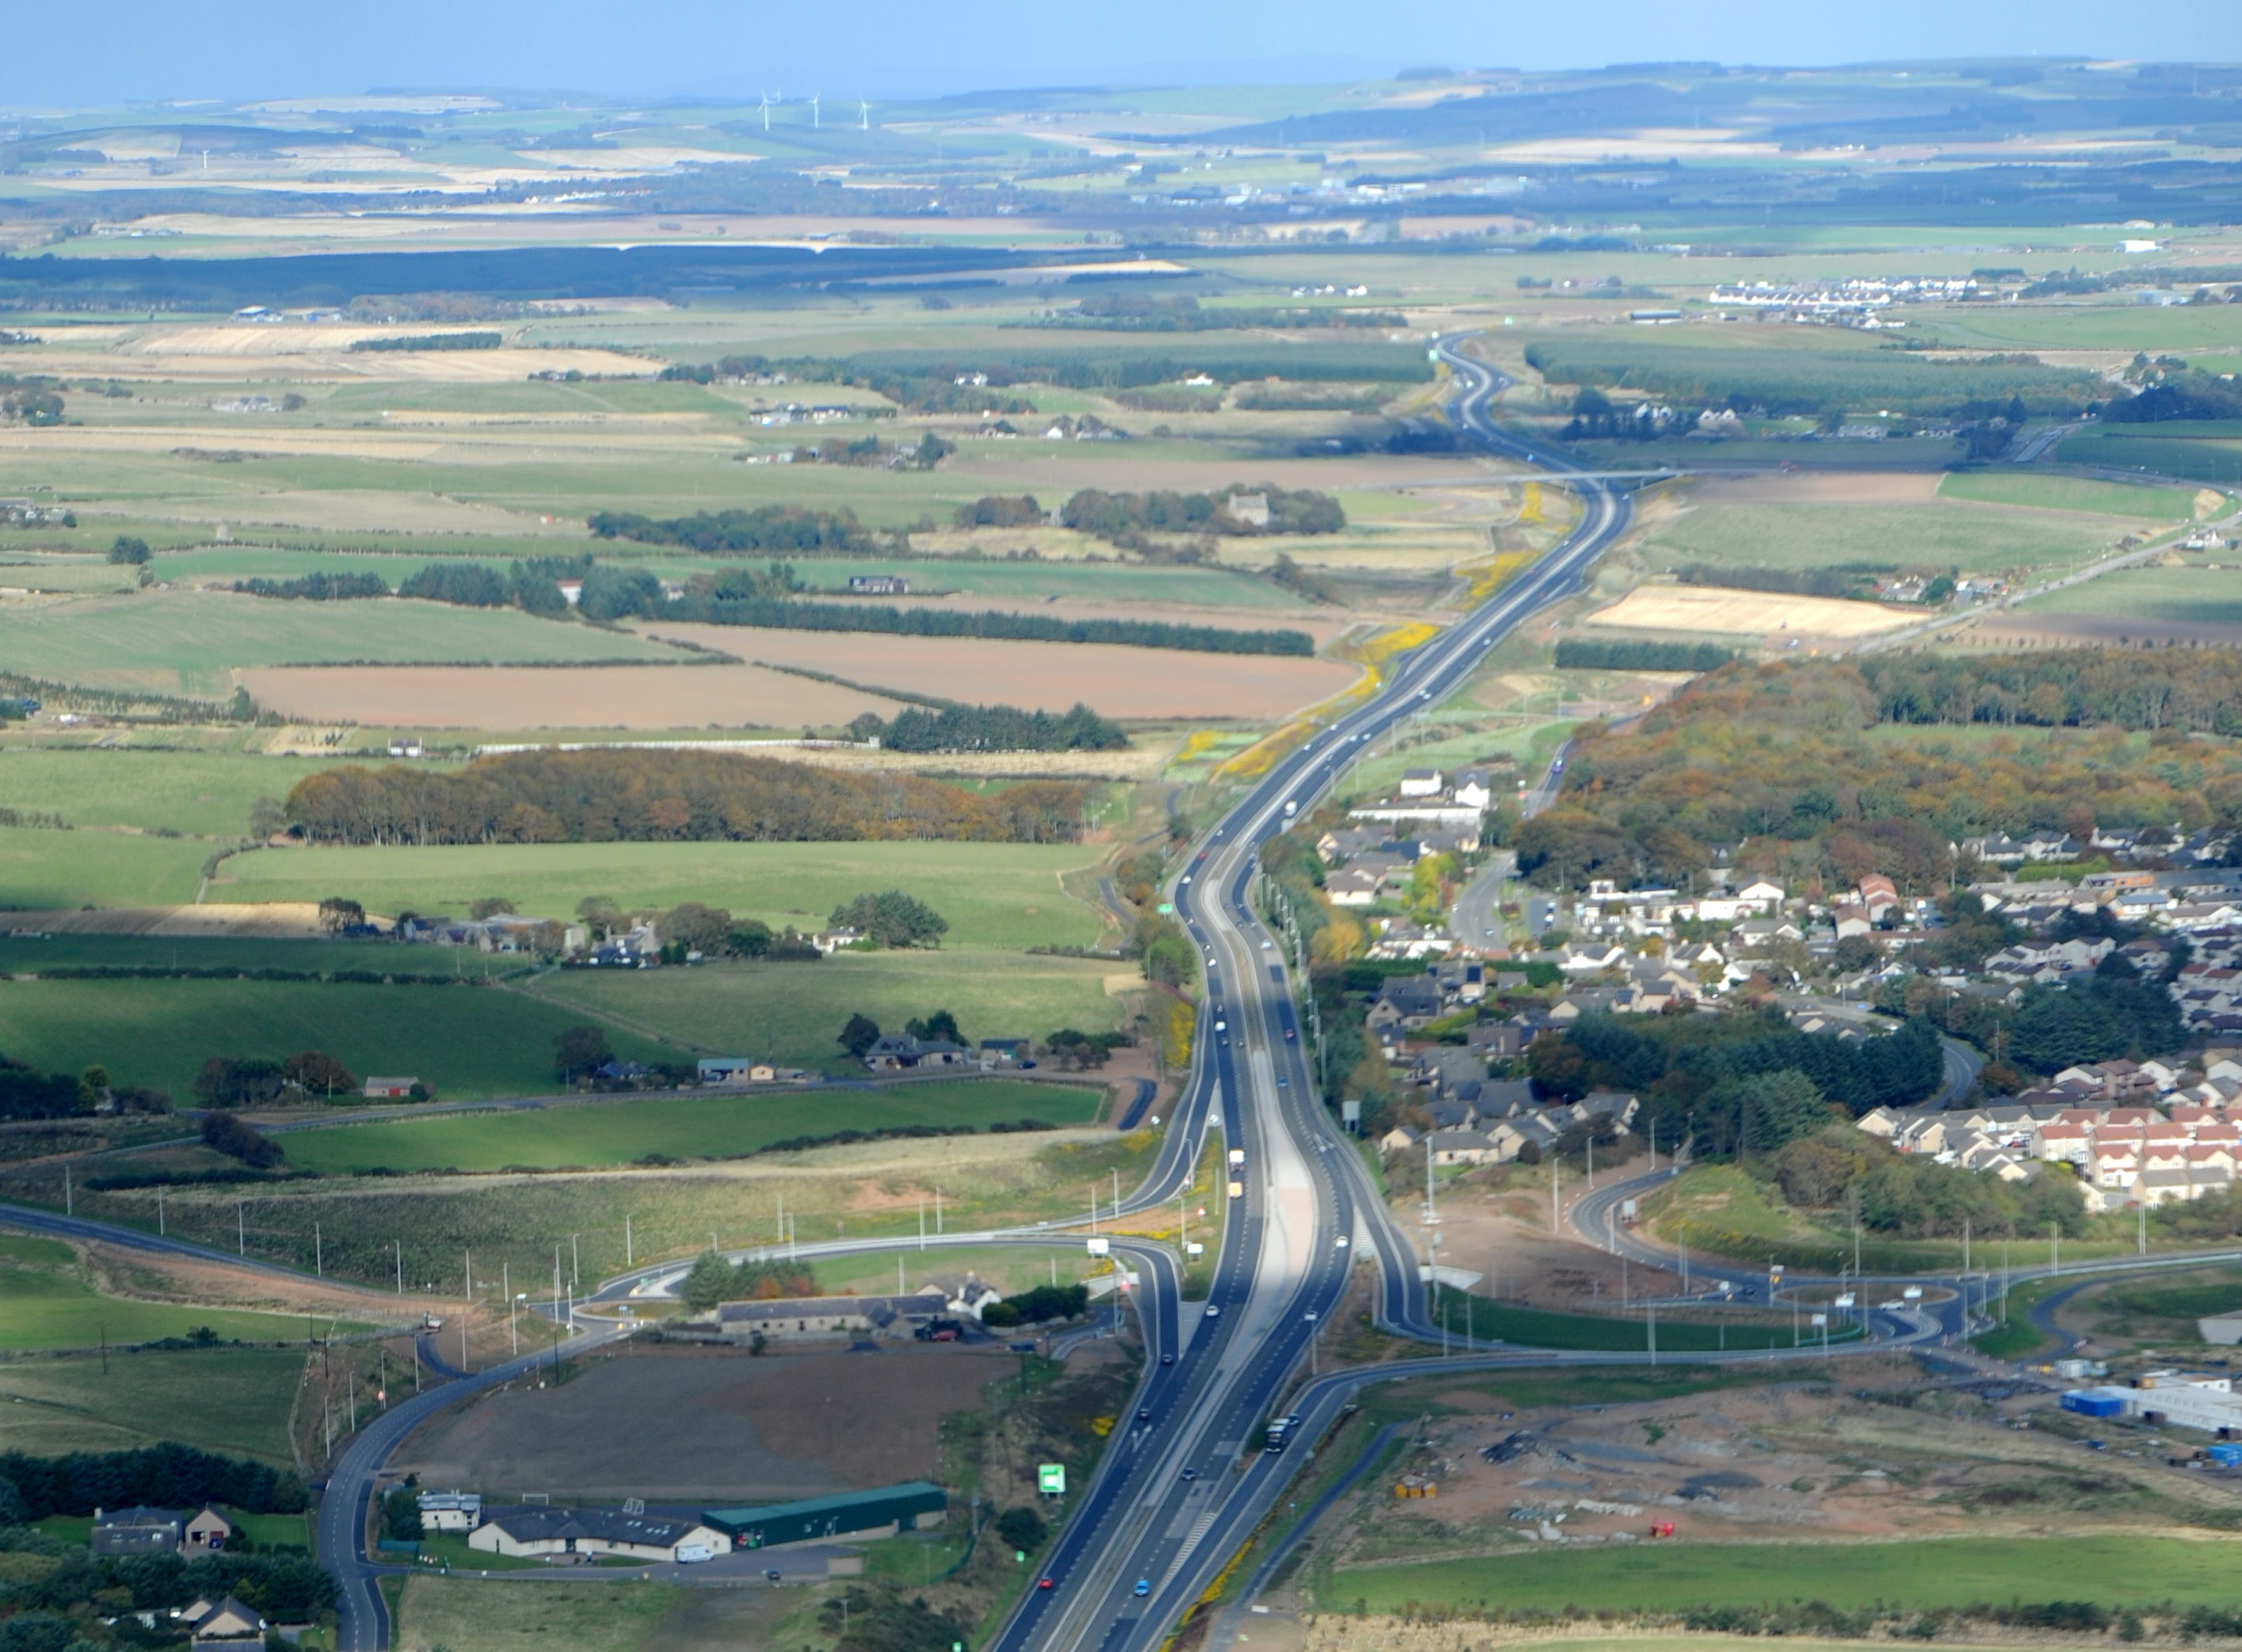 The northern route of the AWPR at Balmedie connecting with the A90.